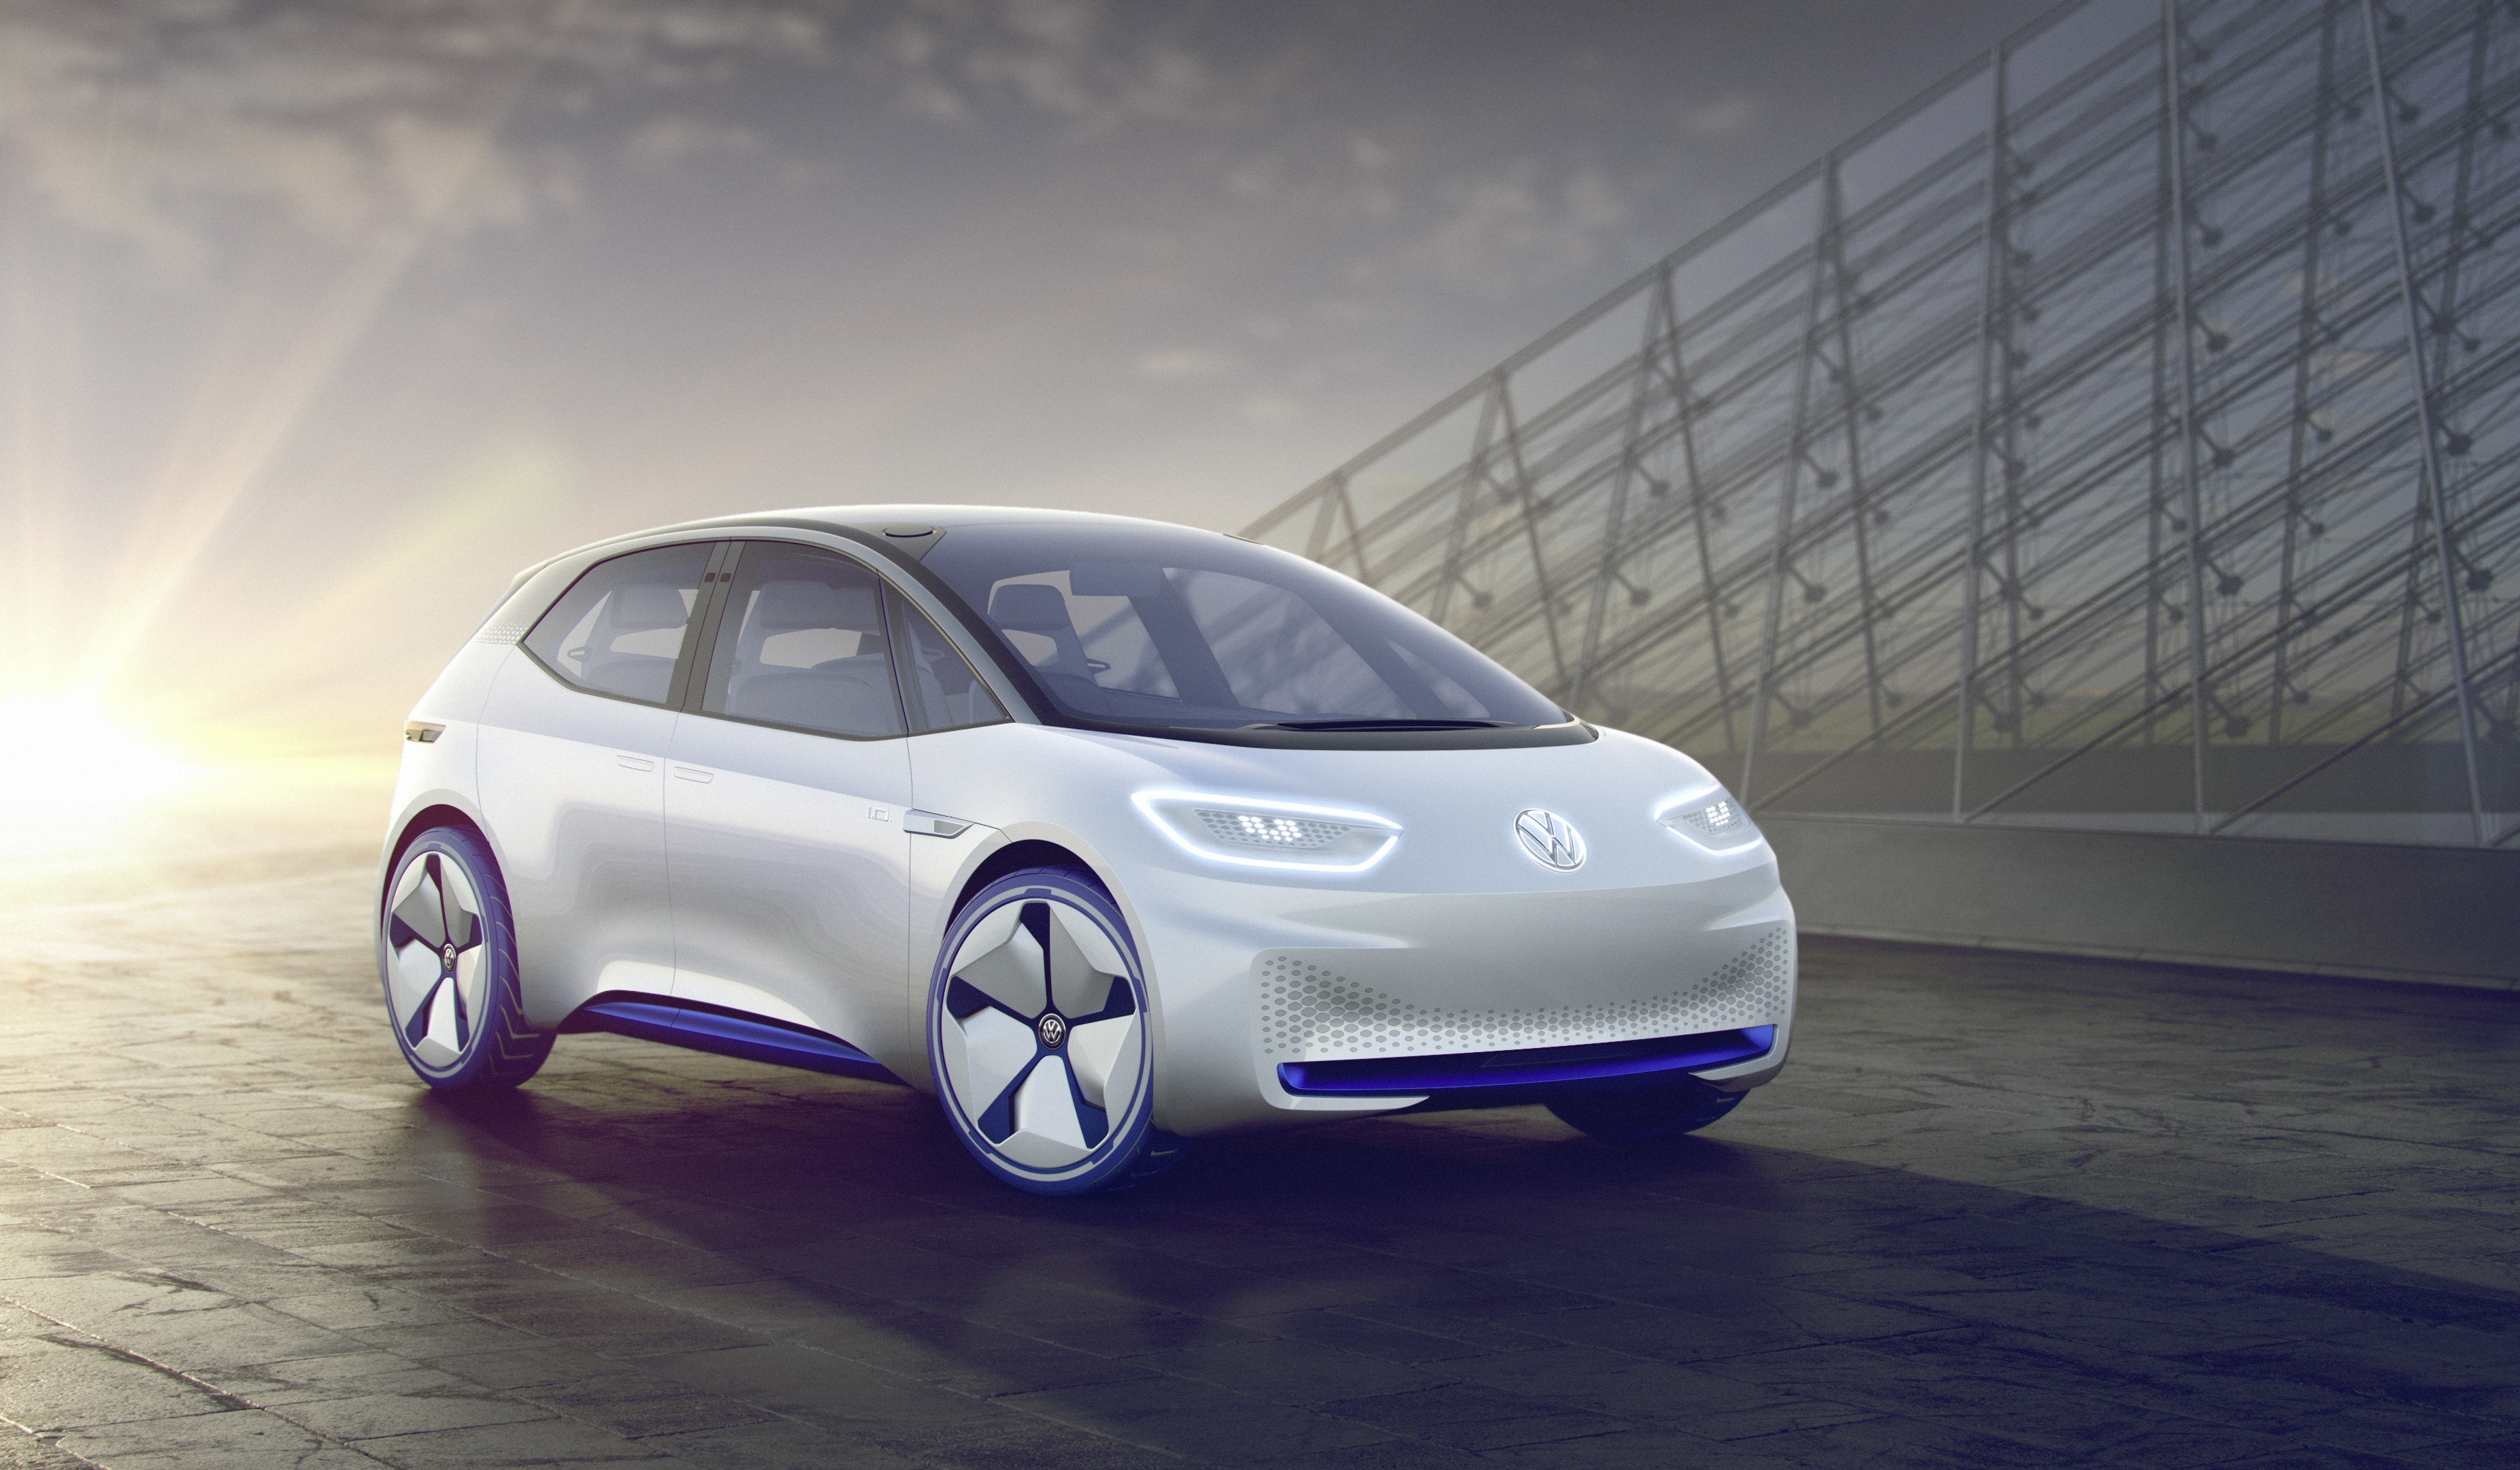 Volkswagen S Rad Looking Electric Car Is Intended To Make You Forget About Selgate